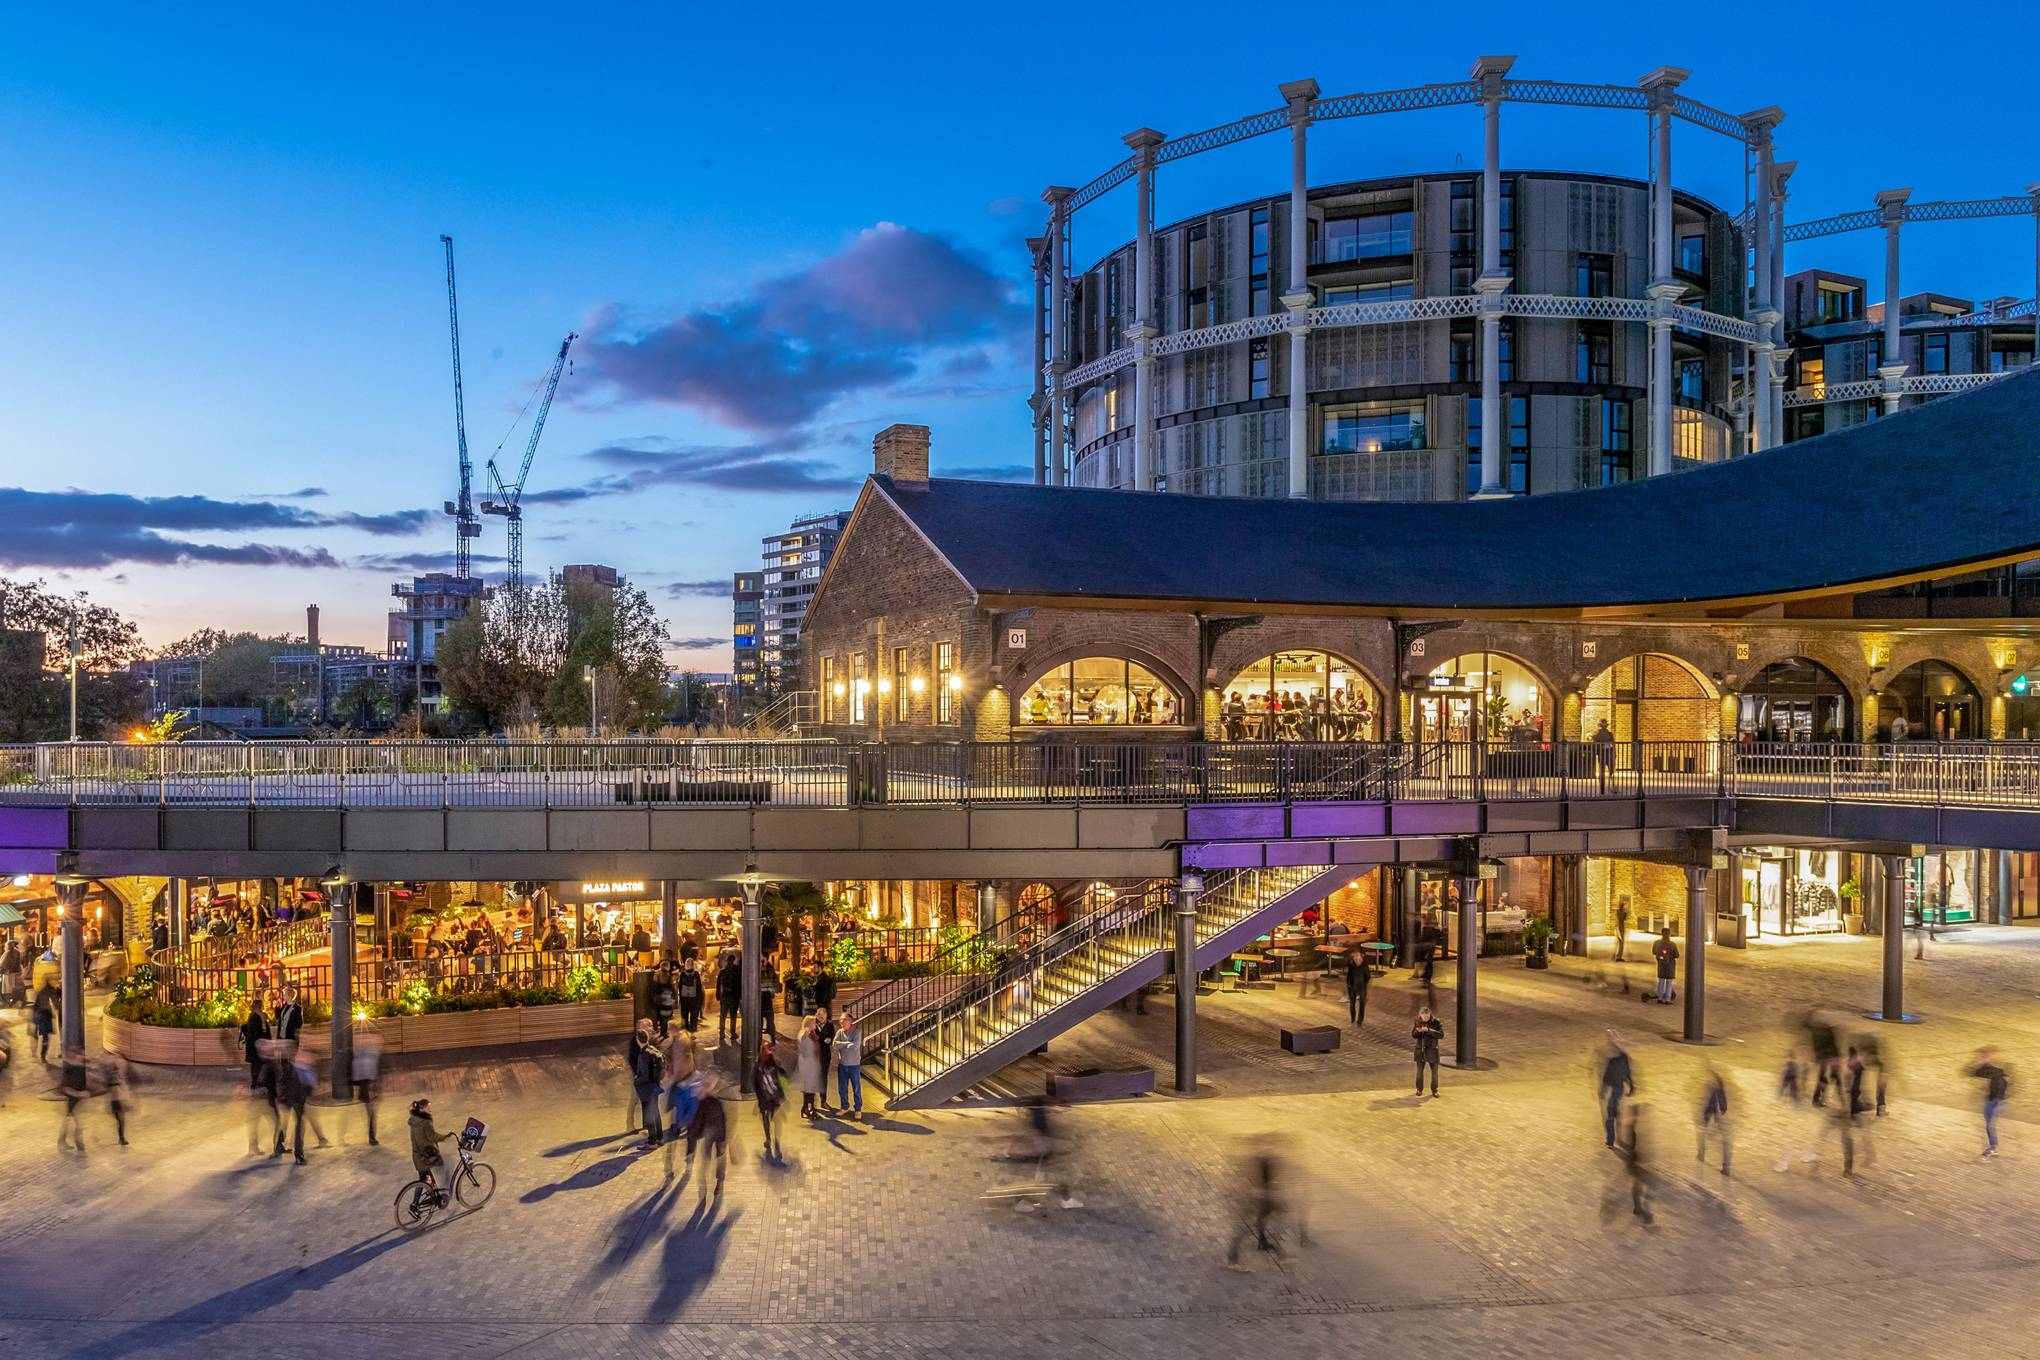 Coal Drops Yard